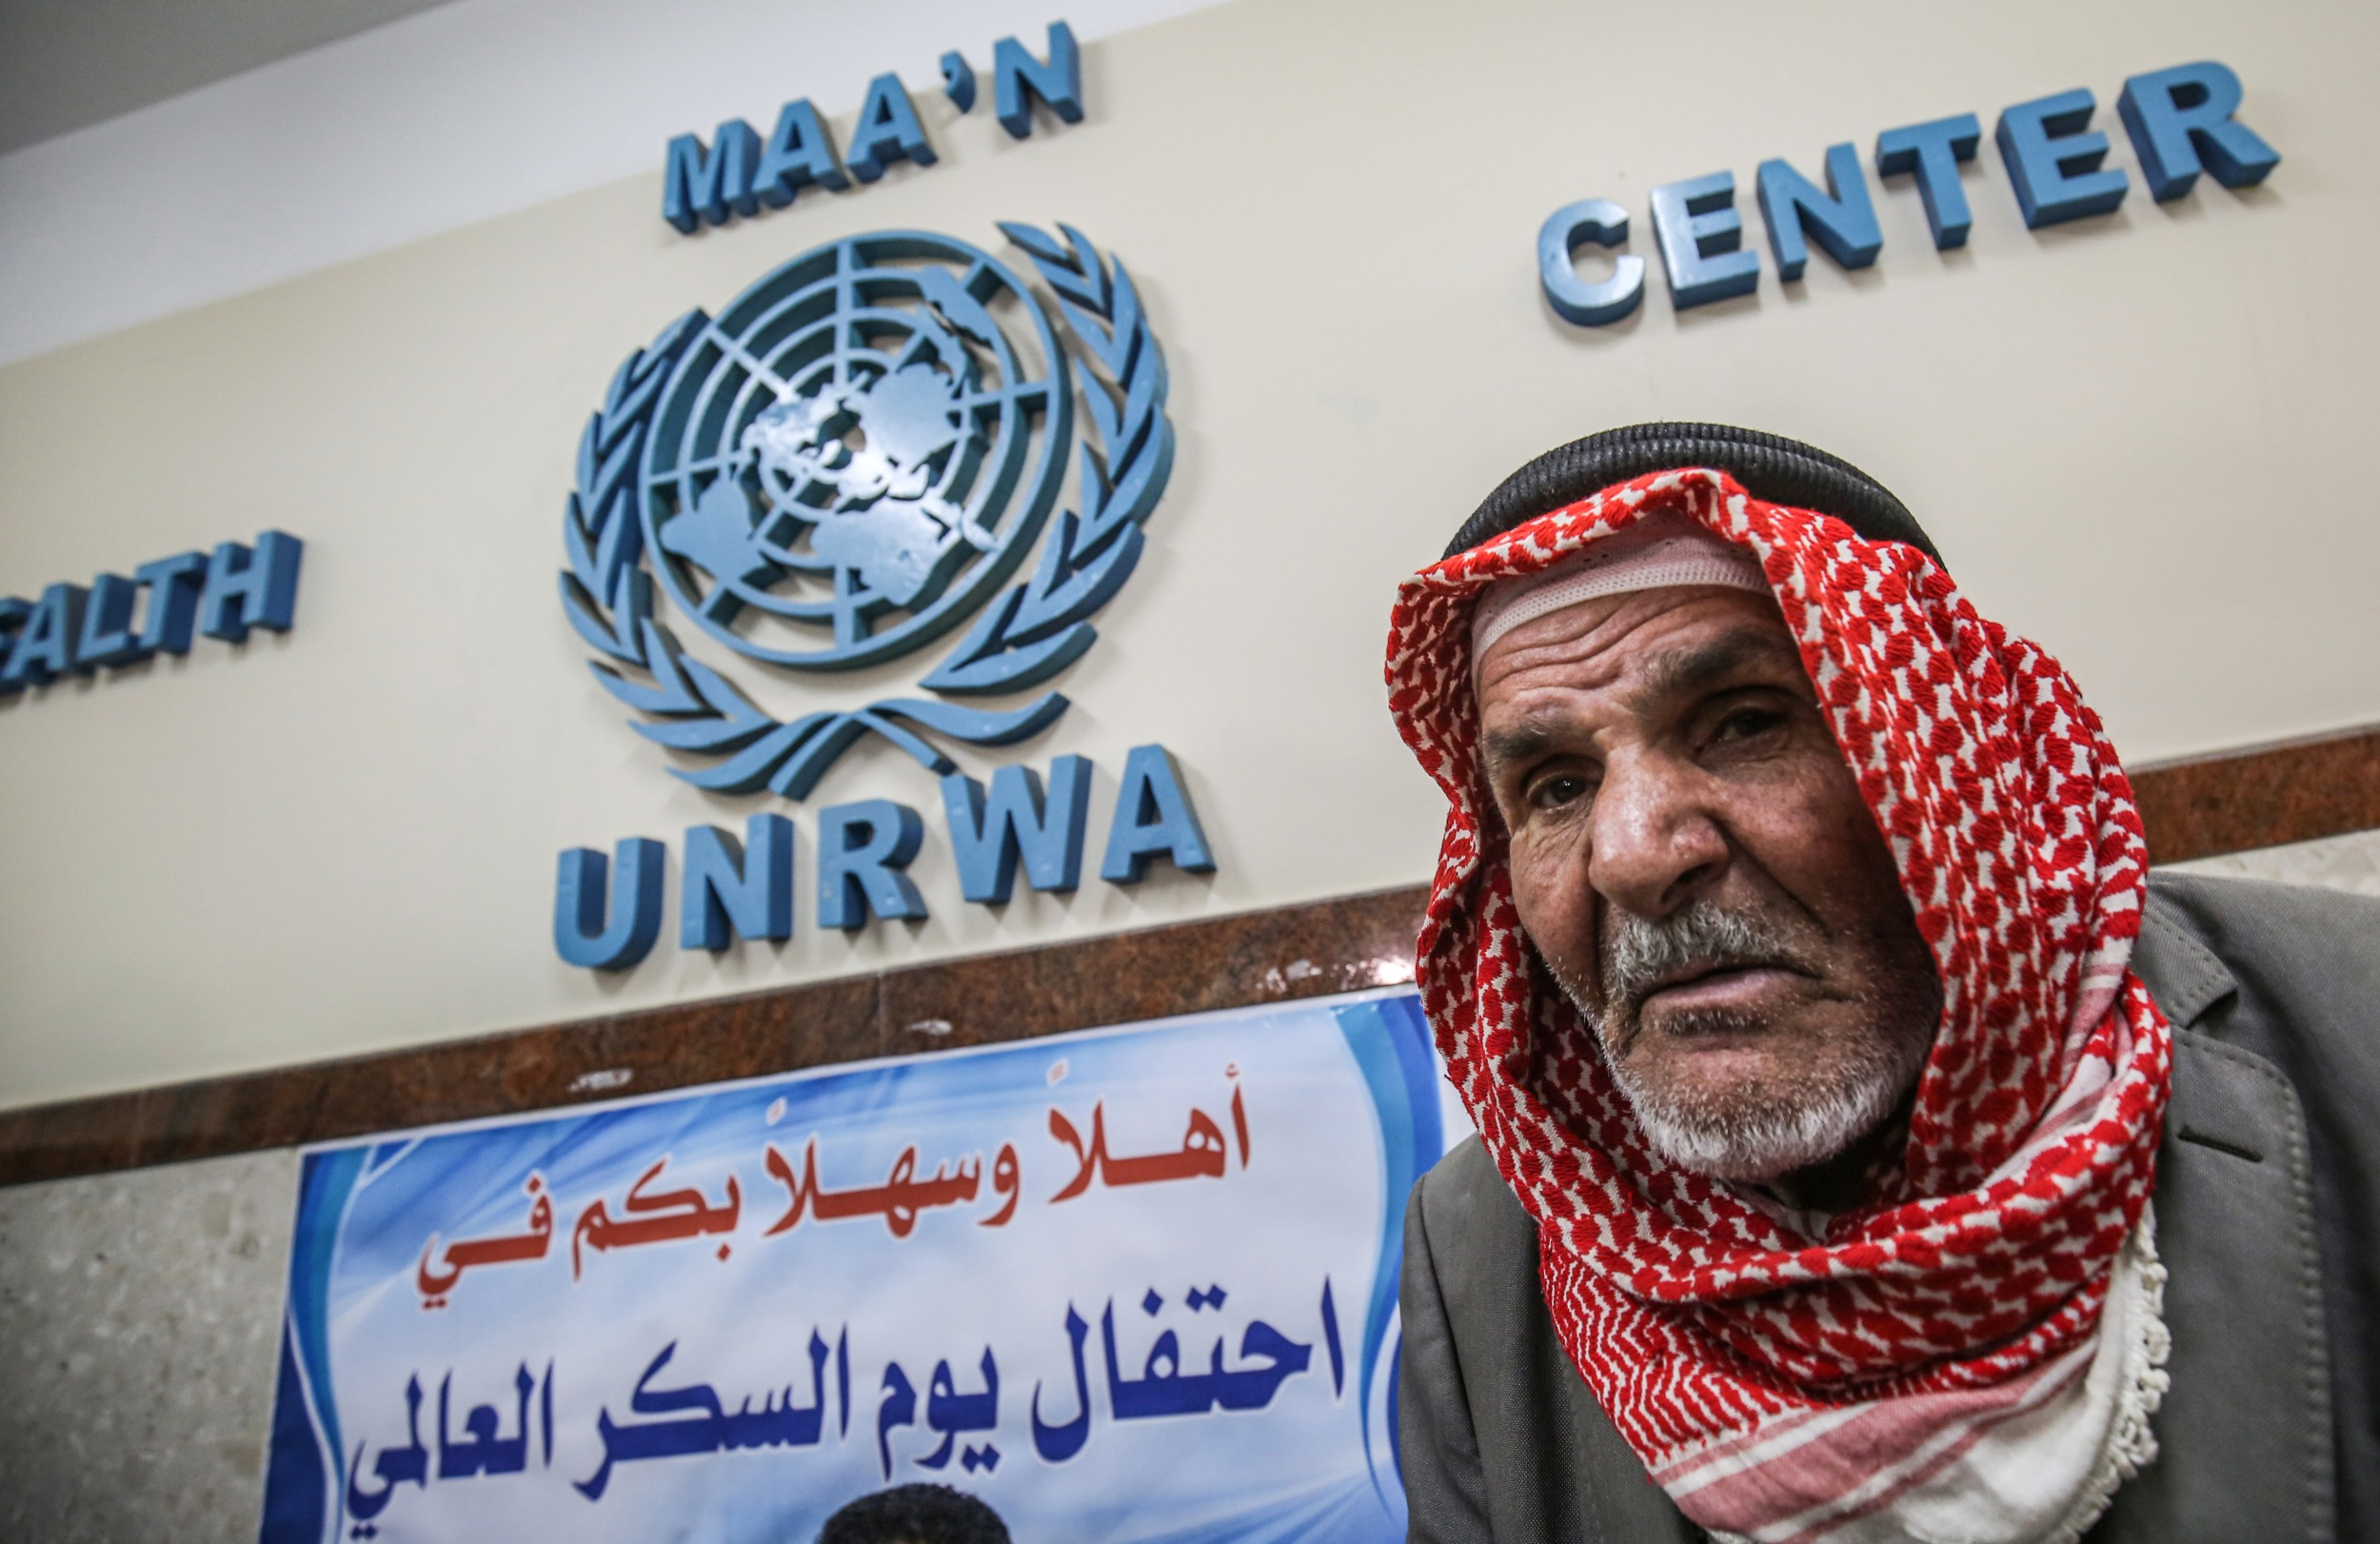 UNRWA provides schooling and medical services to millions of Palestinian refugees in Jordan, Lebanon and Syria as well as the Palestinian territories (AFP)